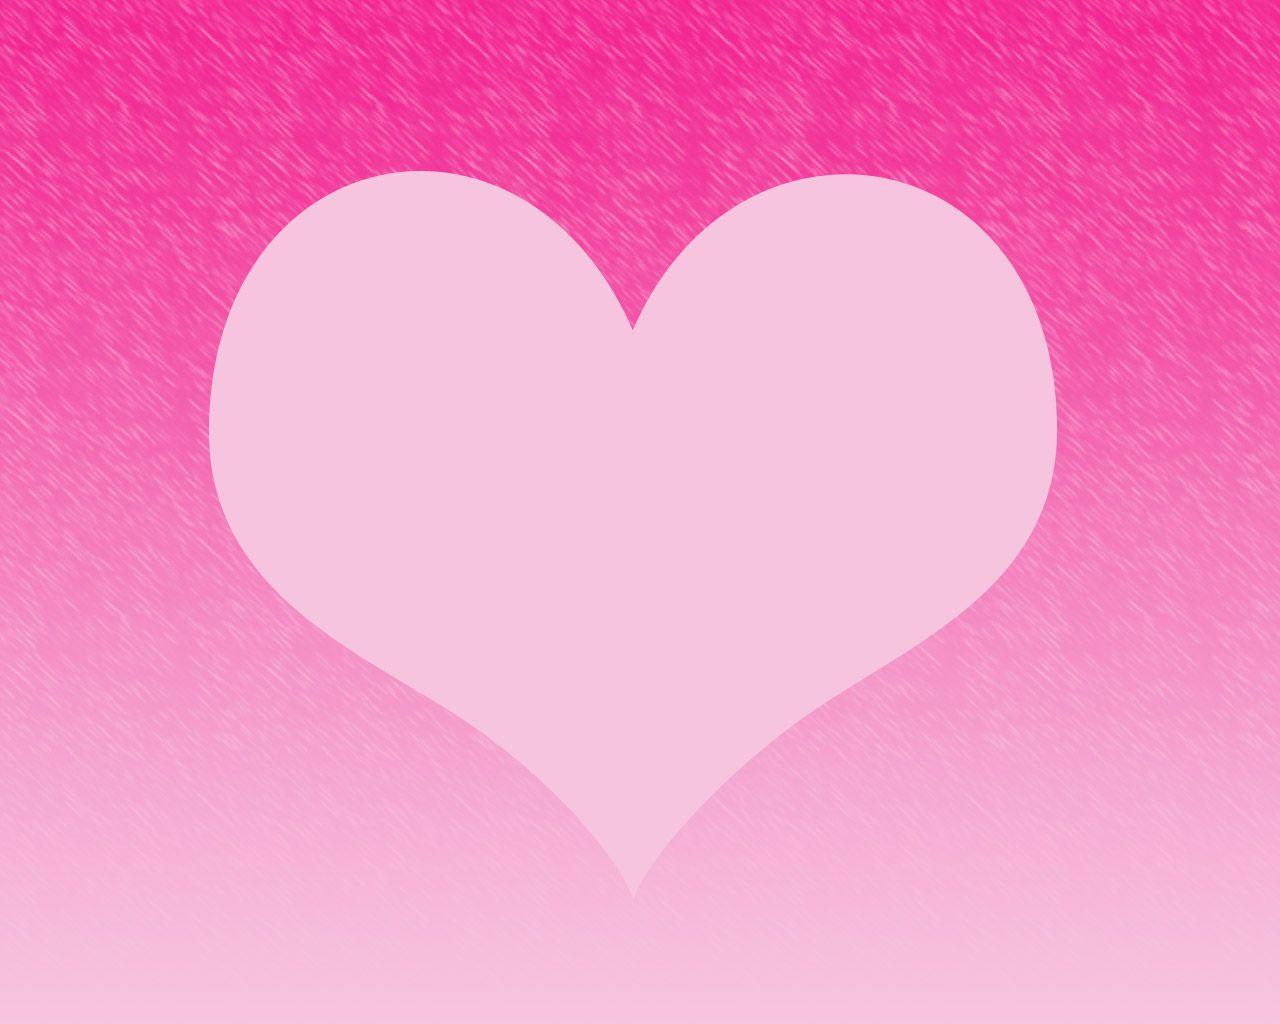 Wallpapers For Cute Pink Heart Wallpaper